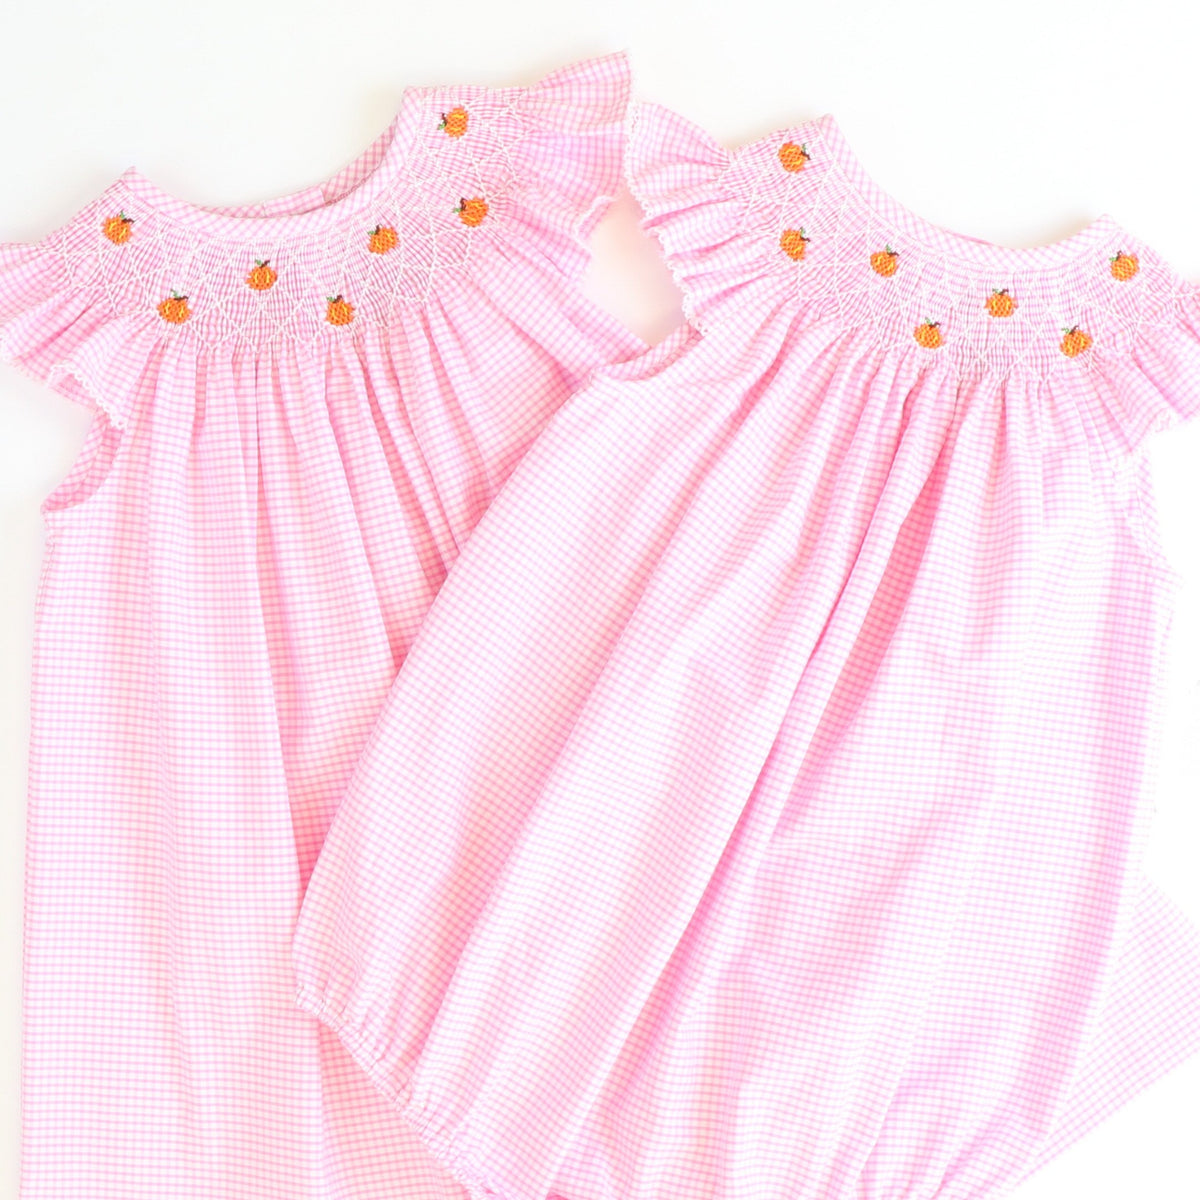 Smocked Tiny Pumpkins Bubble - Light Pink Mini Check Seersucker